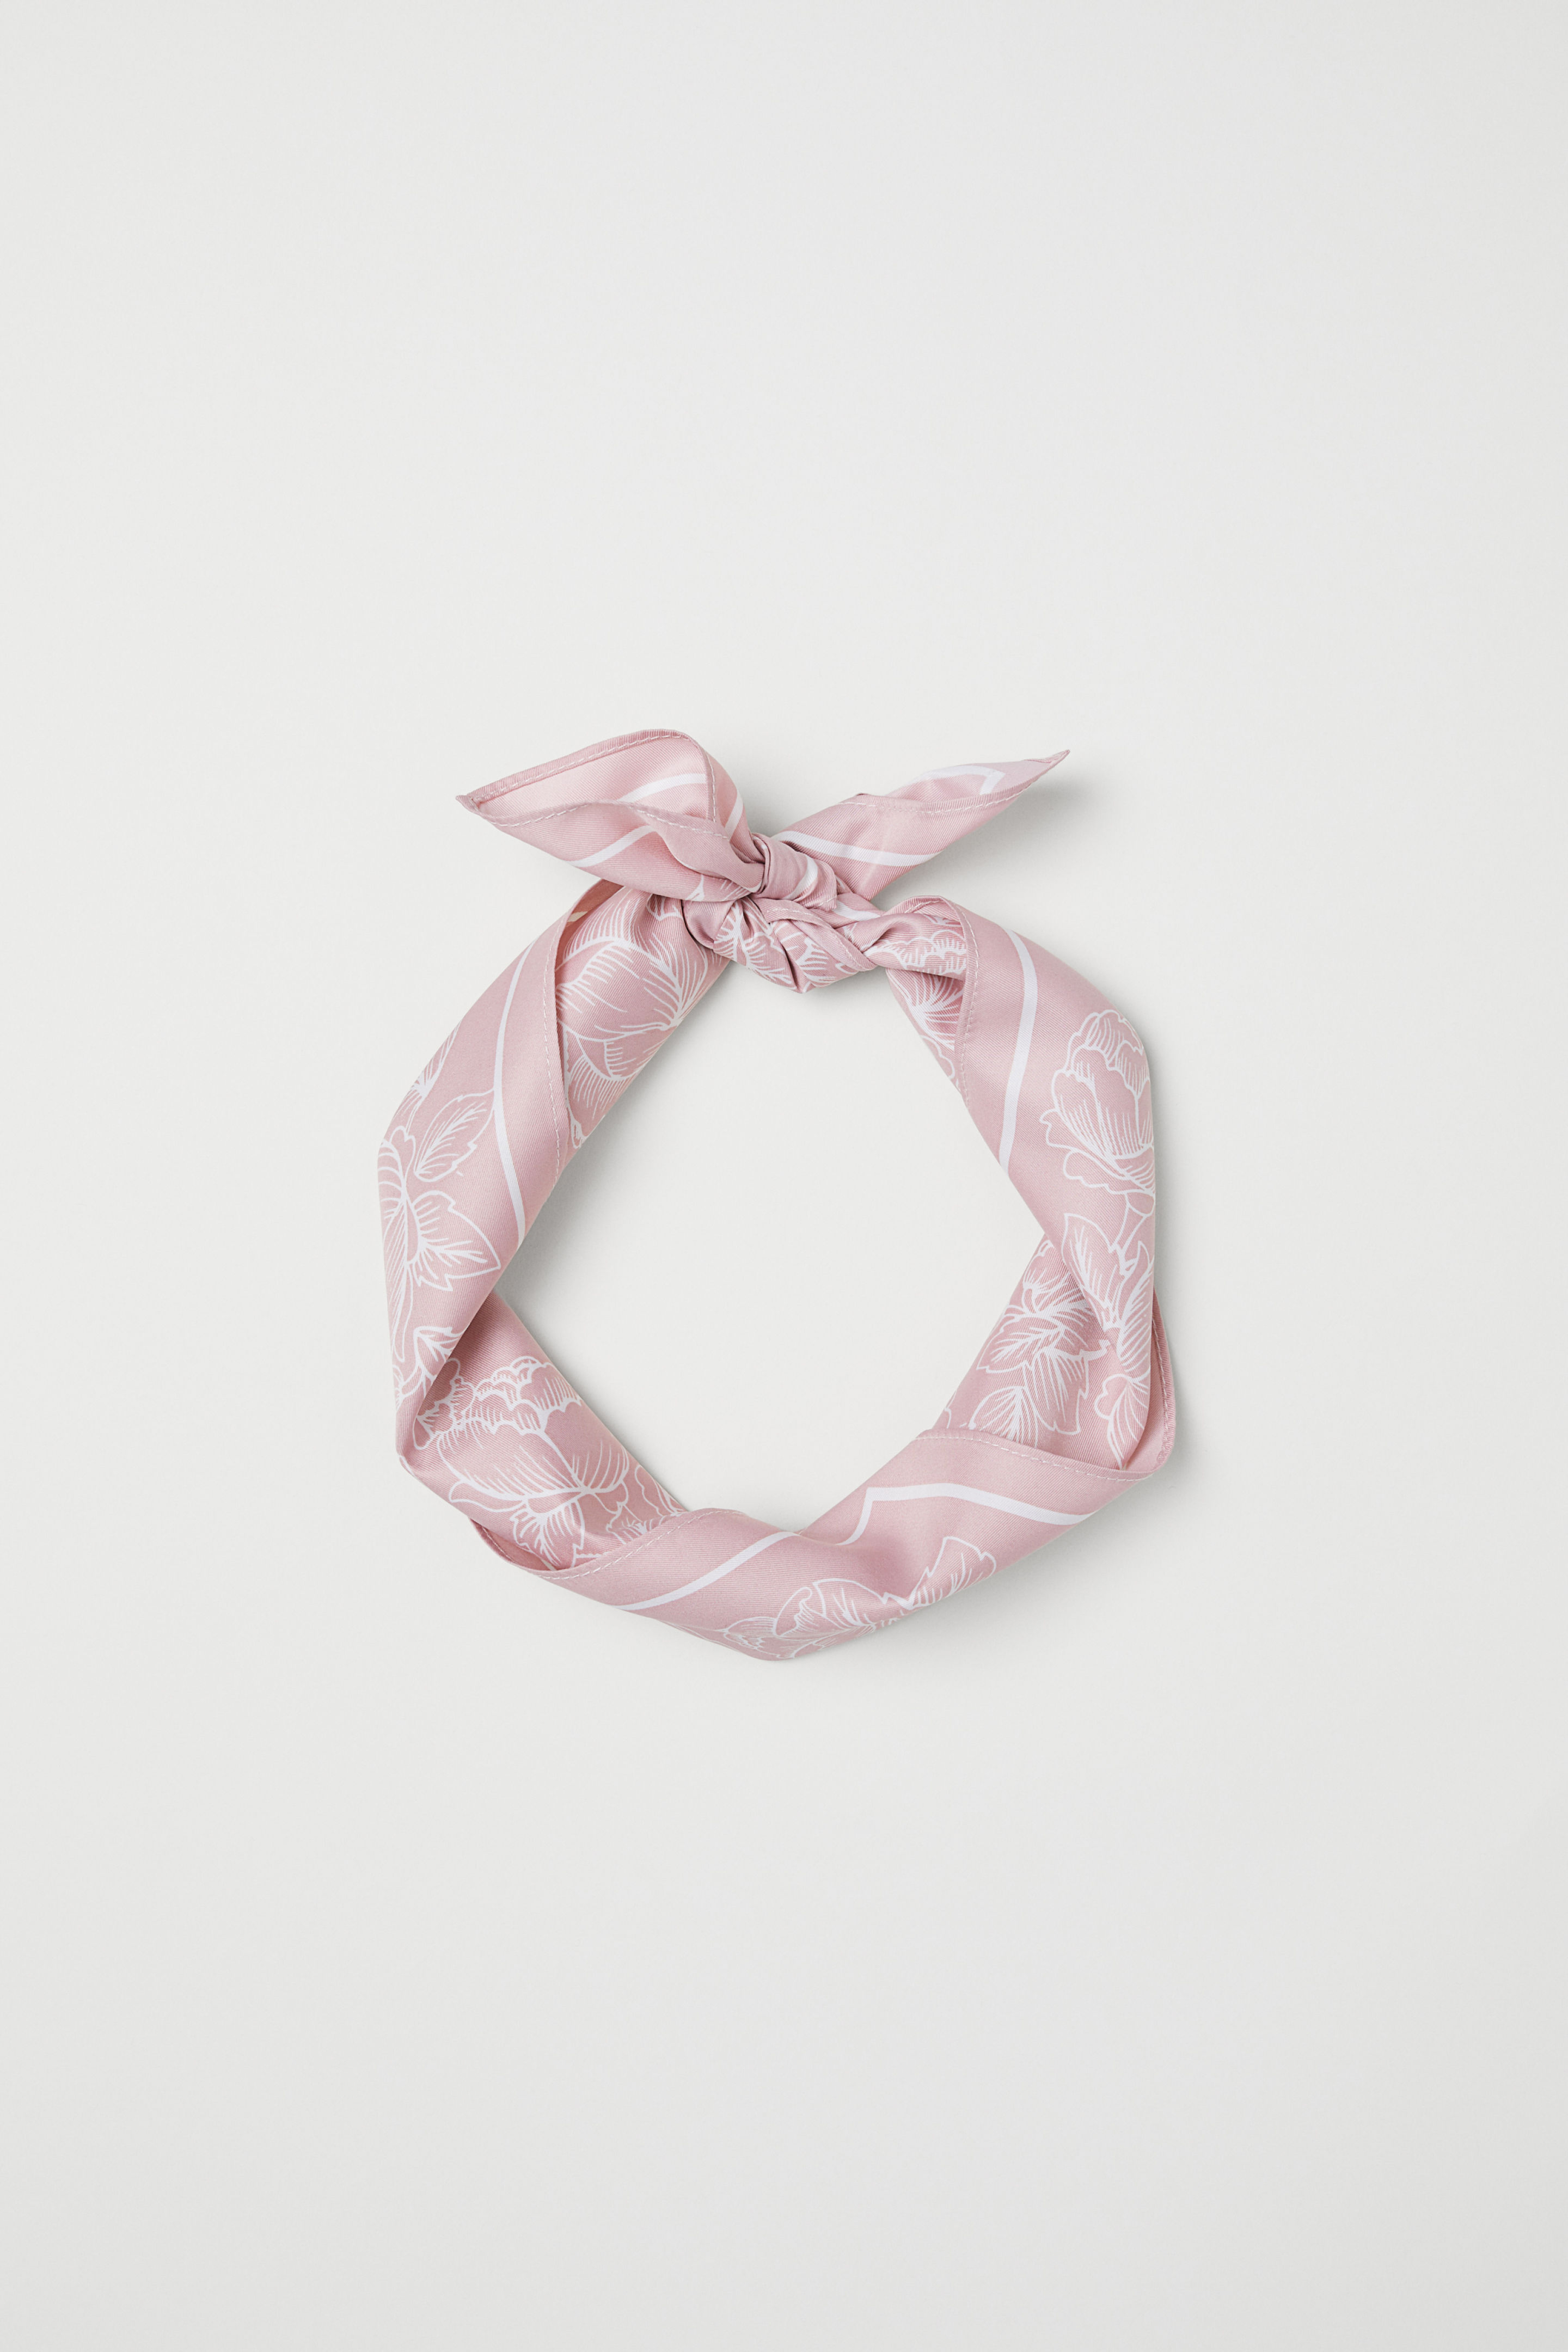 Scarf/Hairband - Powder Pink